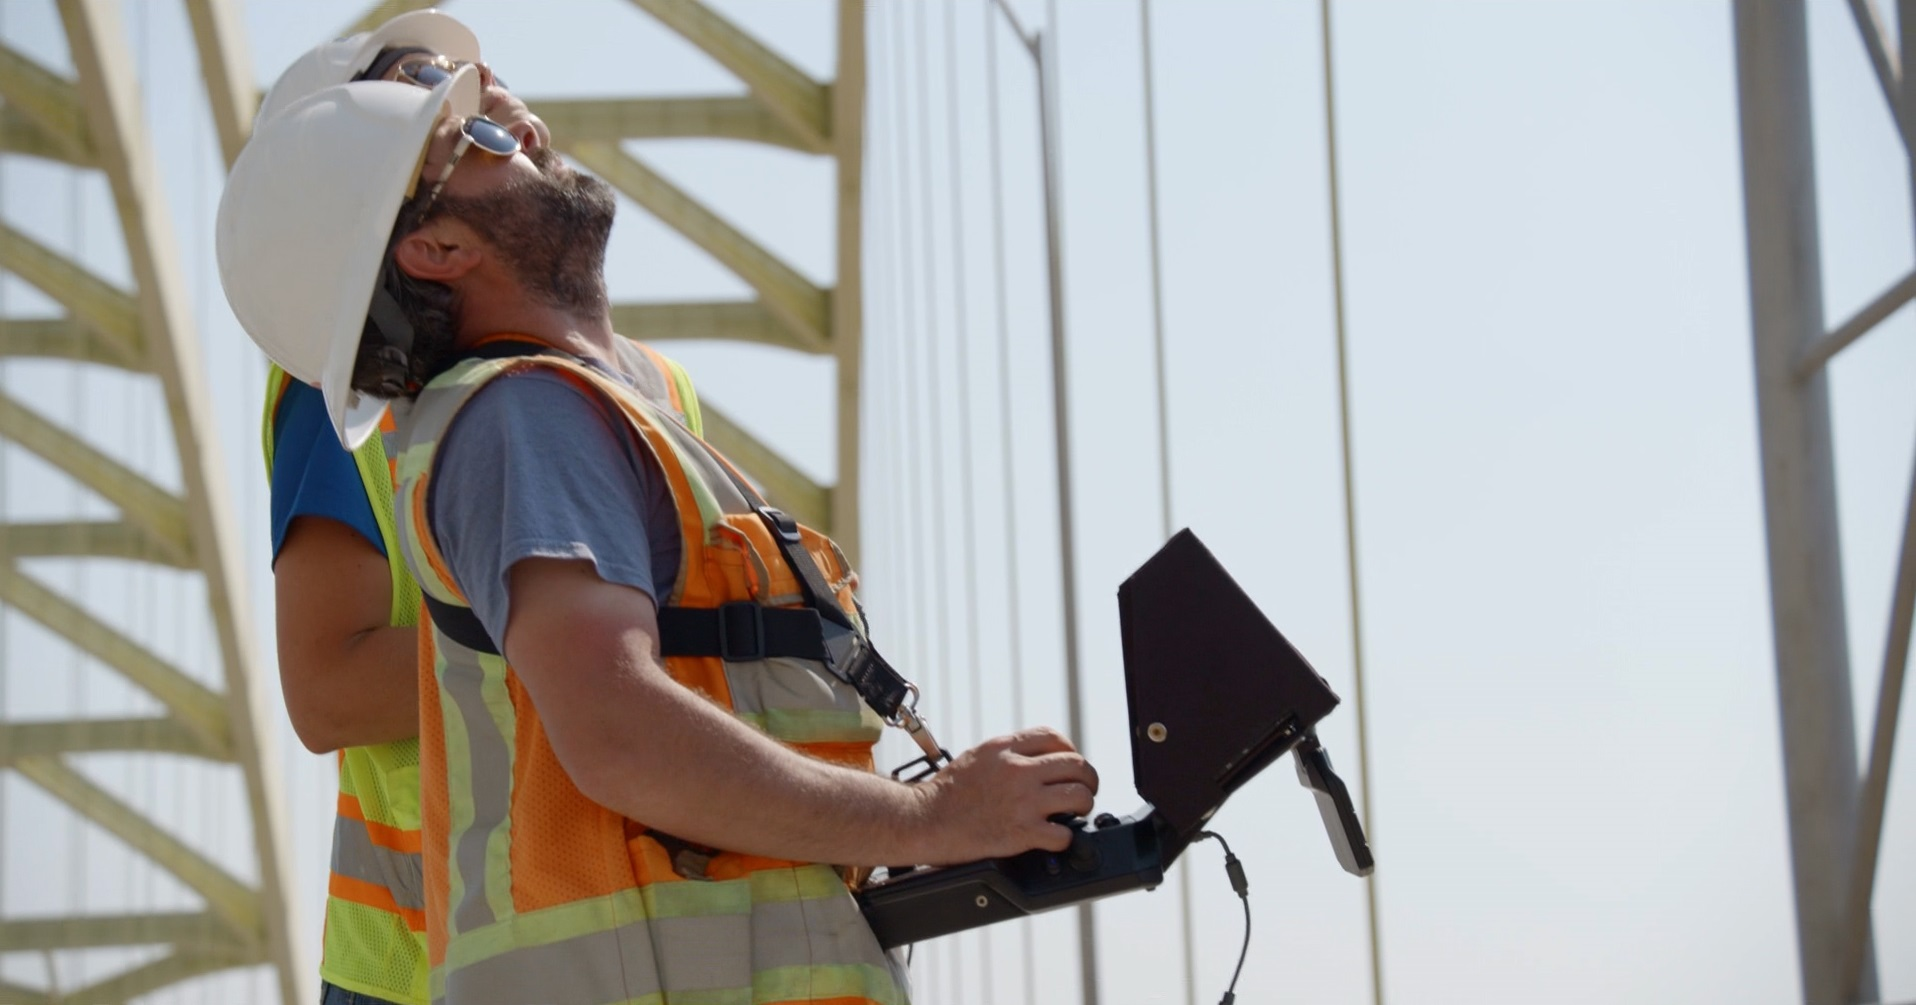 Large amounts of data from the drone sensors are stored in the cloud for engineering analysis